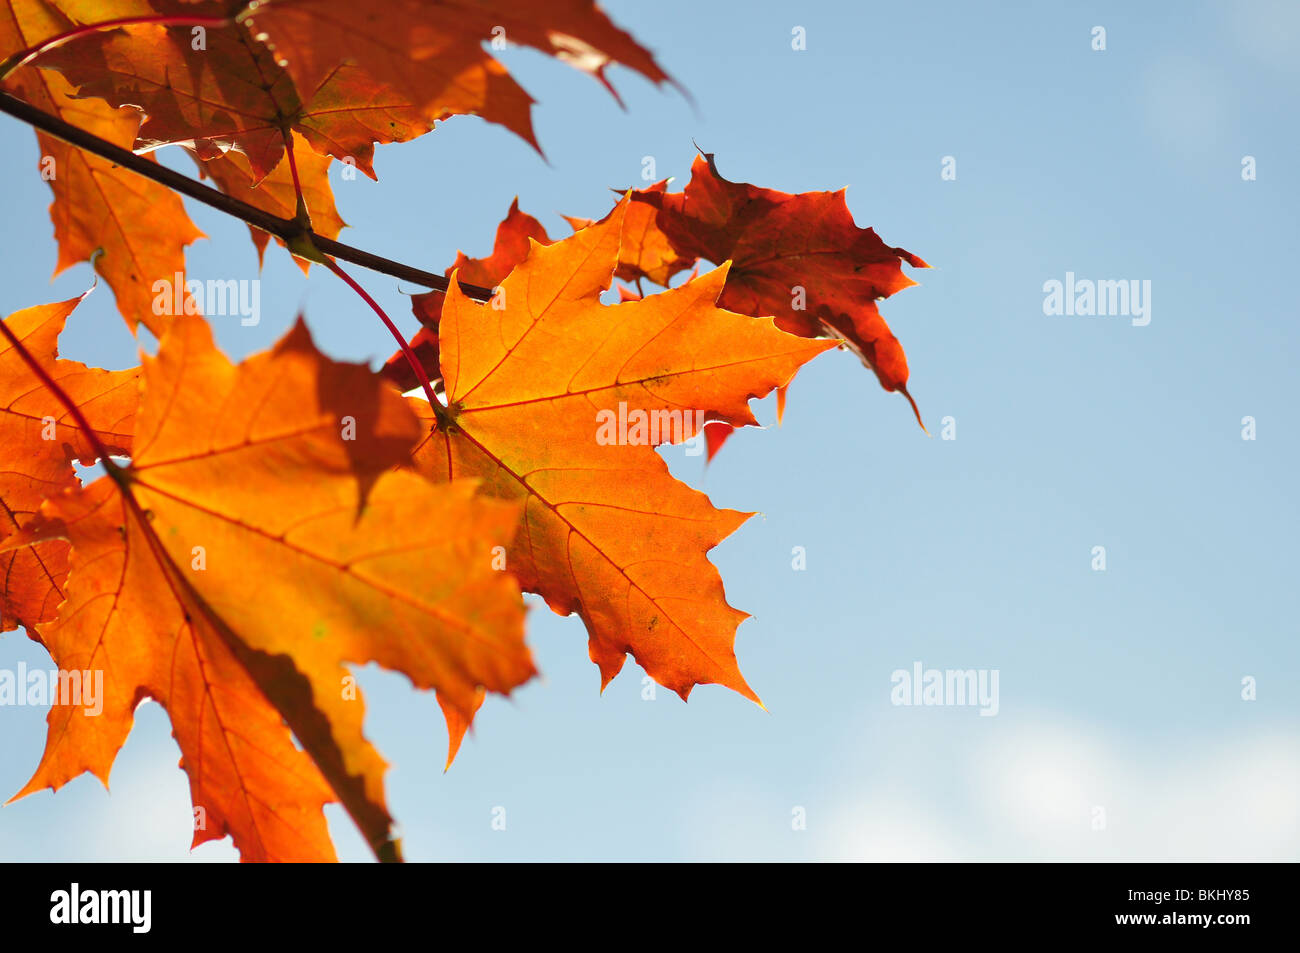 Fall autumn leaves, over blue sky, shallow focus - Stock Image